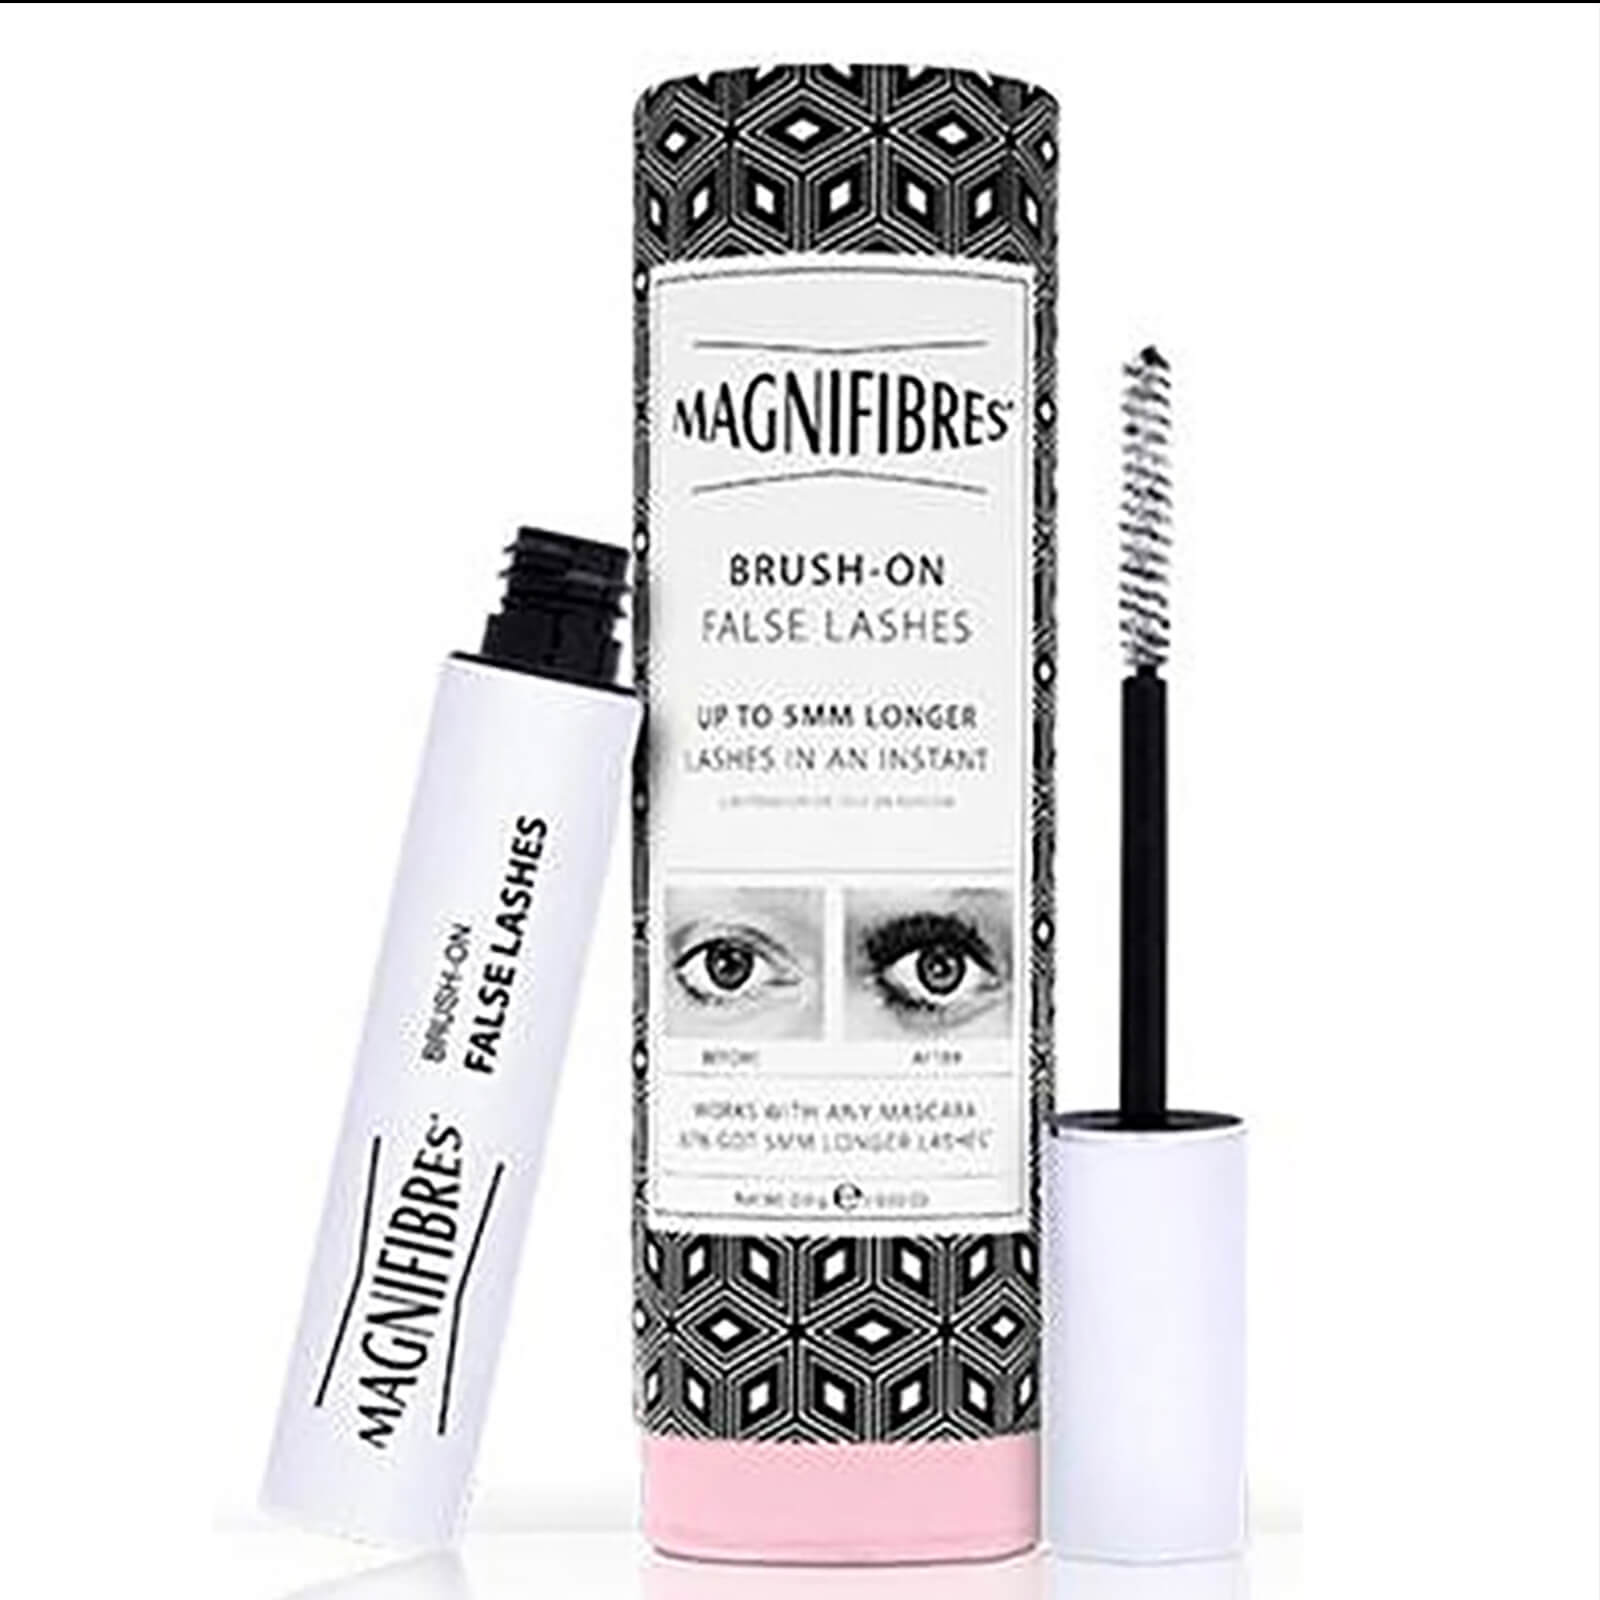 caf2e9bba5f Magnifibres Brush-on False Lashes | Free Shipping | Lookfantastic